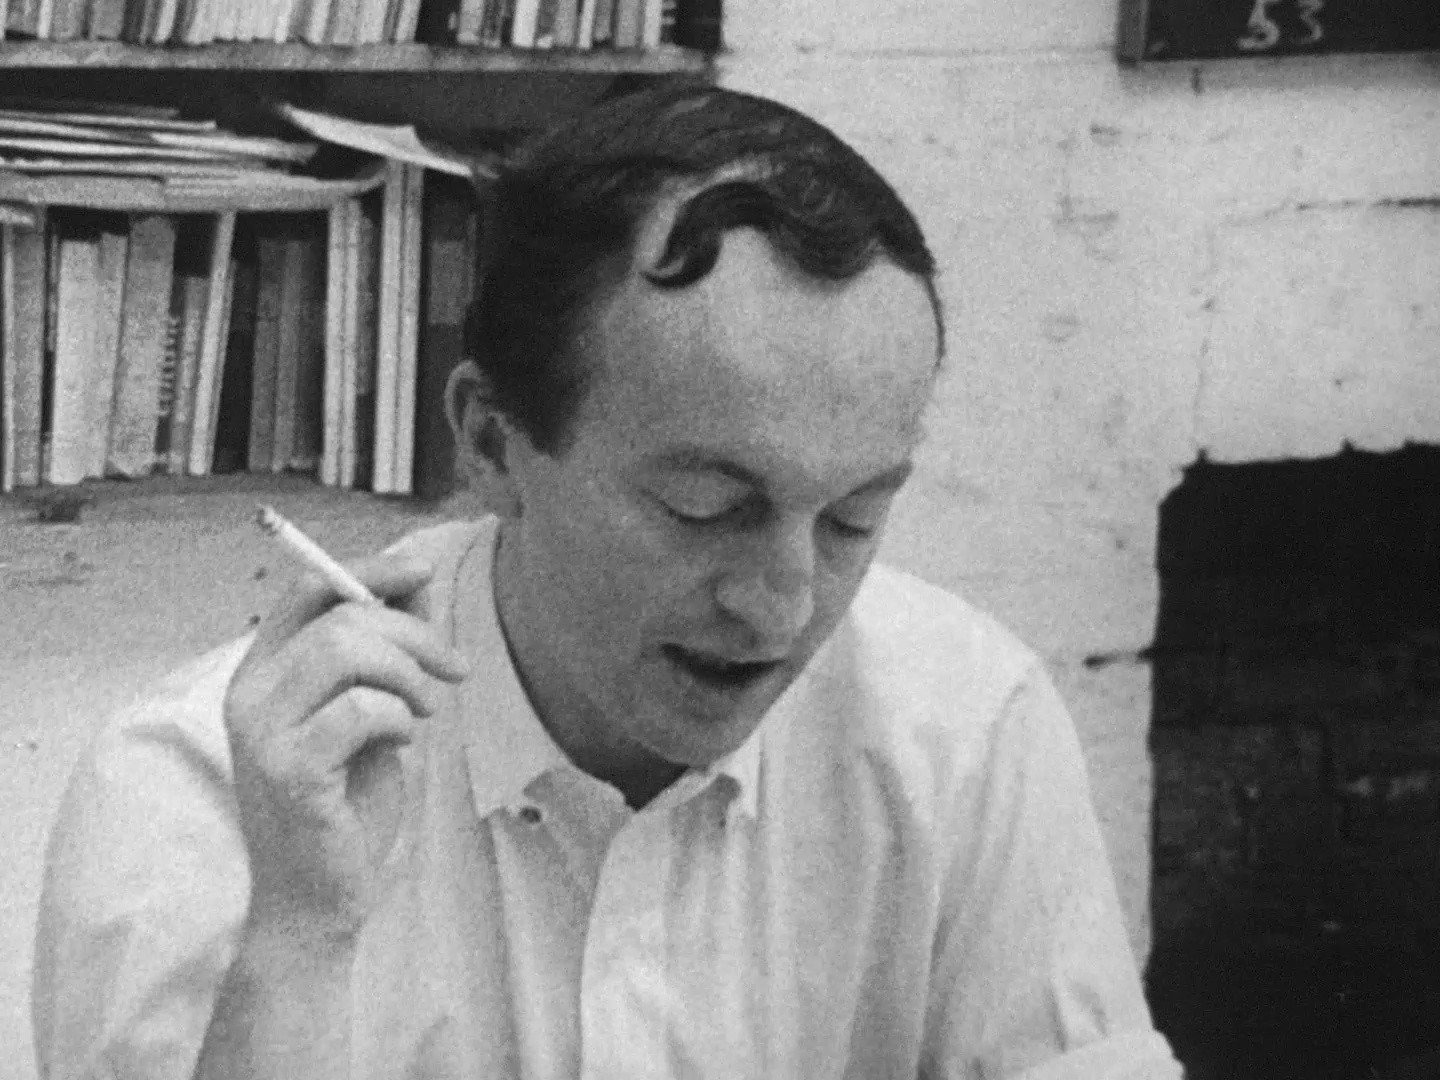 Frank O'Hara. USA: Poetry / Frank O'Hara and Ed Sanders. 1966